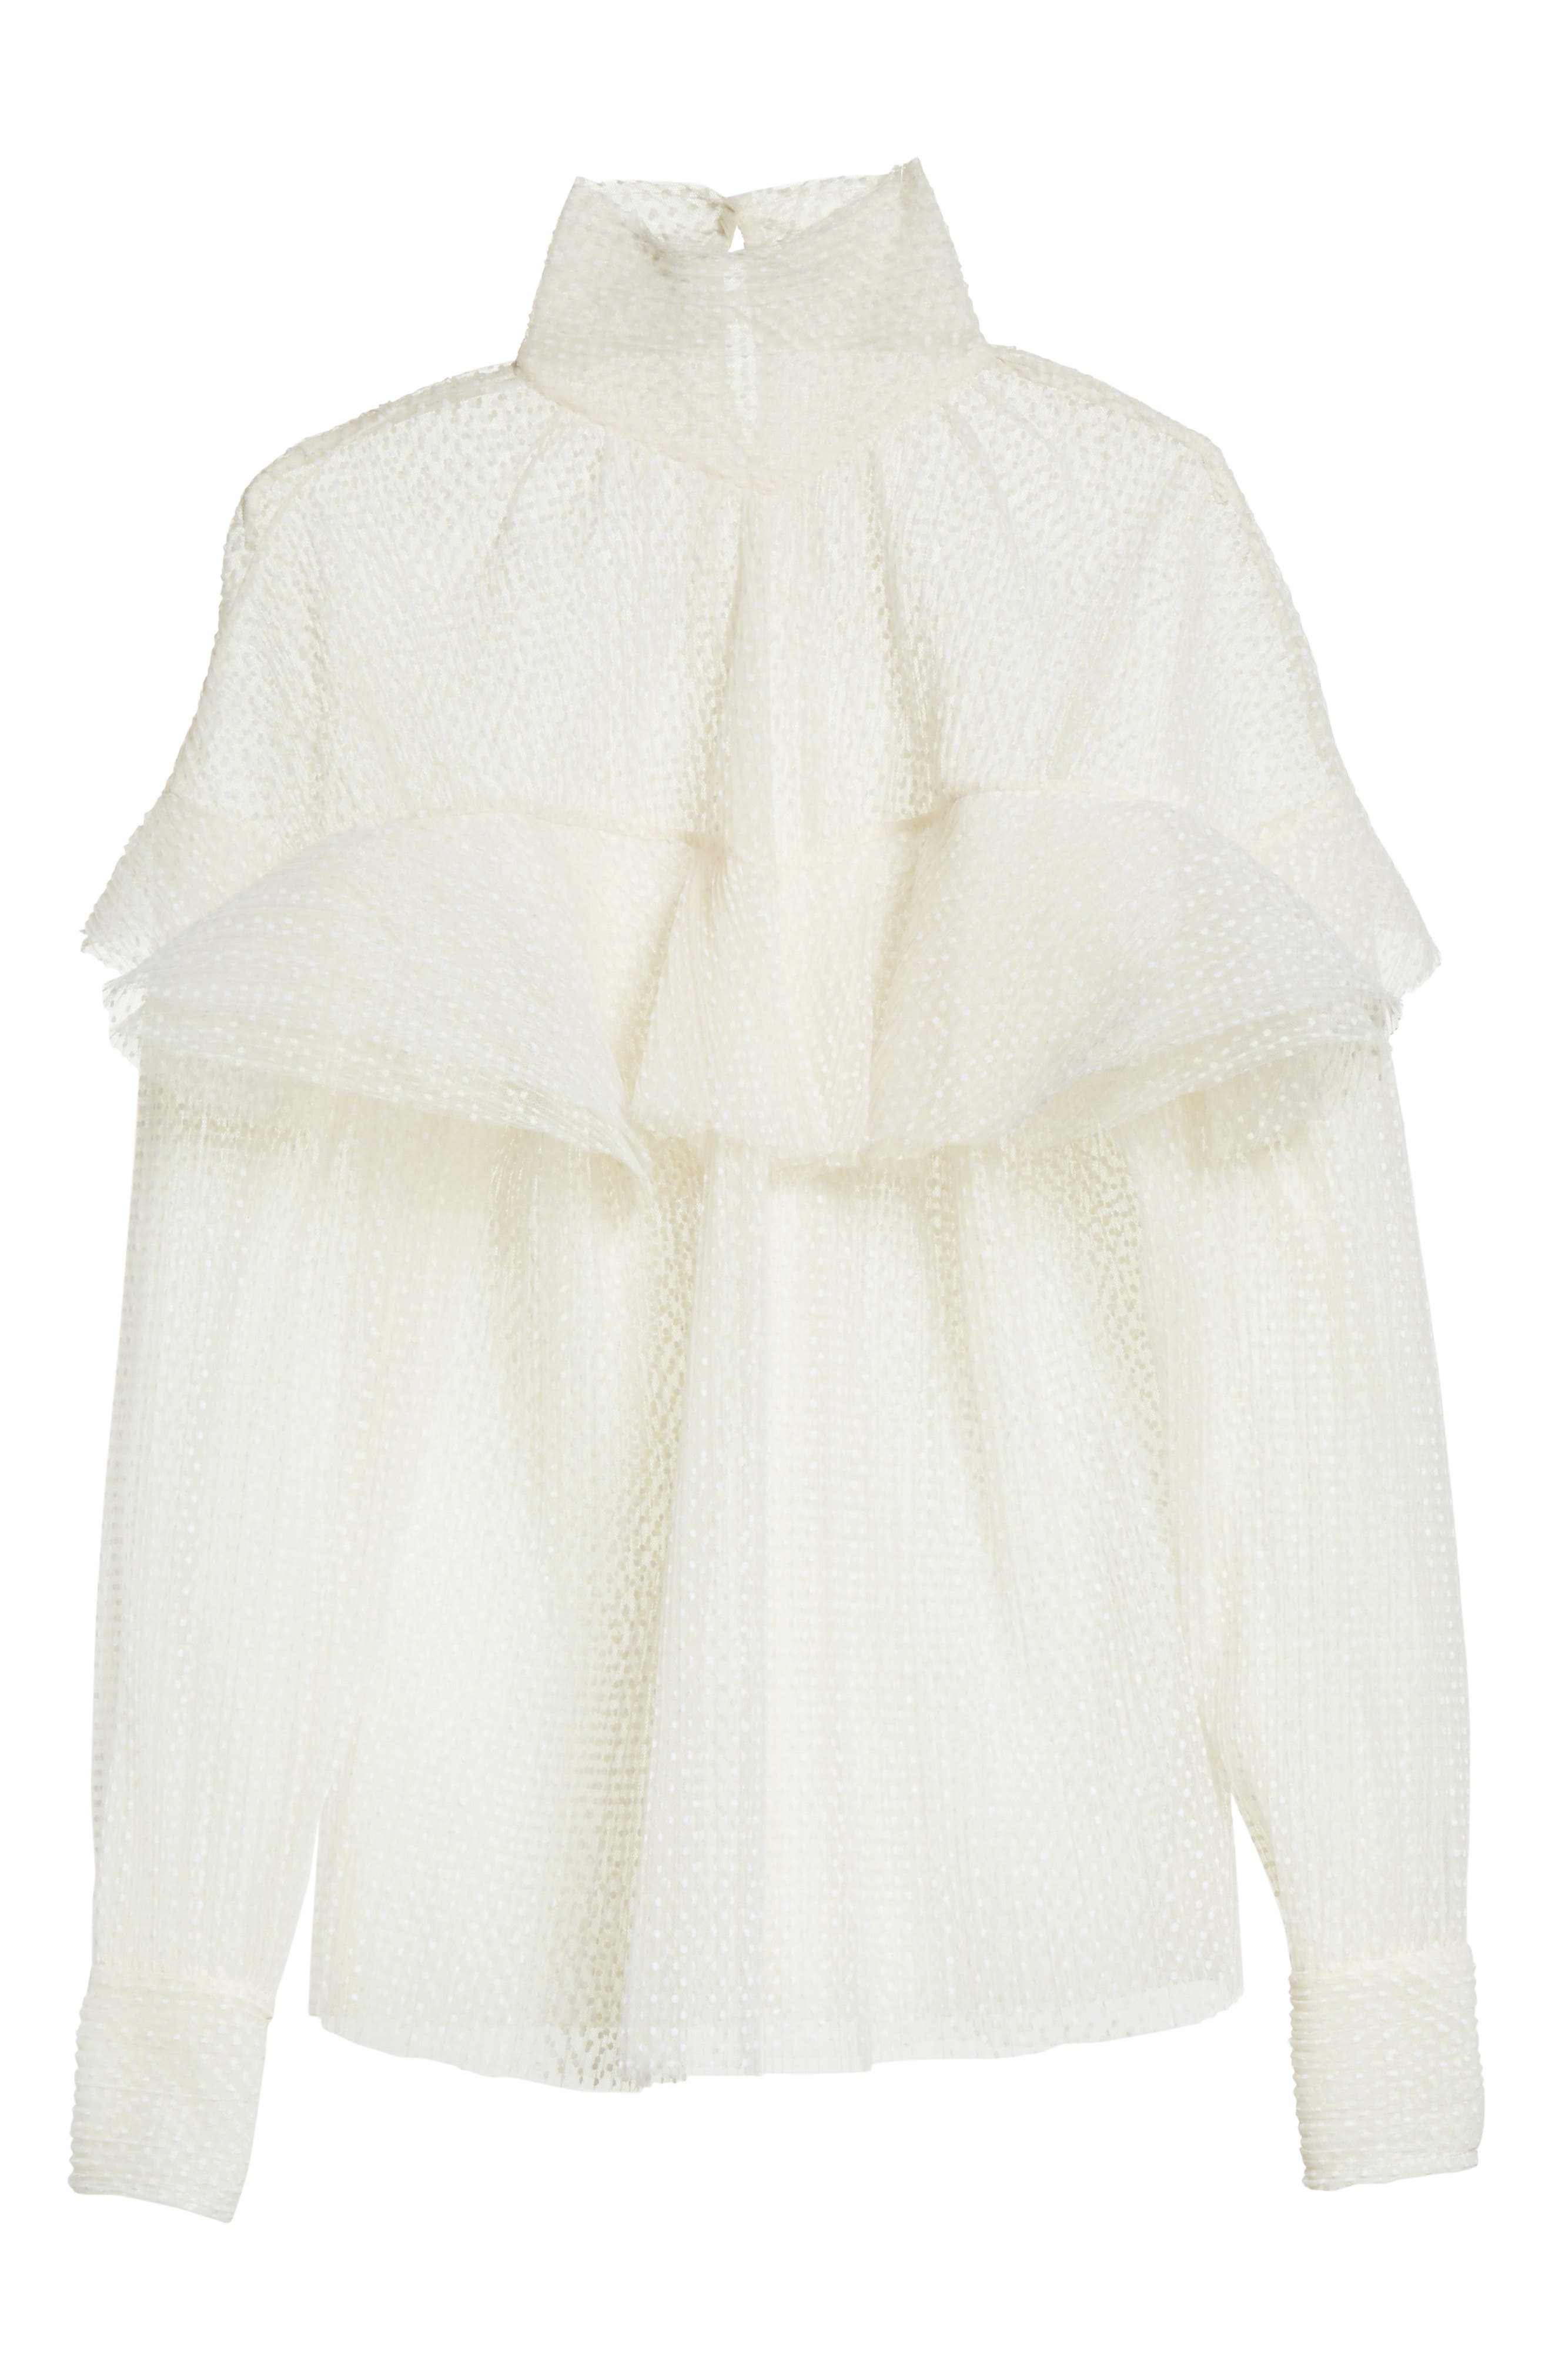 A.W.A.K.E Frill Double Layered Tulle Top,                             Alternate thumbnail 6, color,                             900